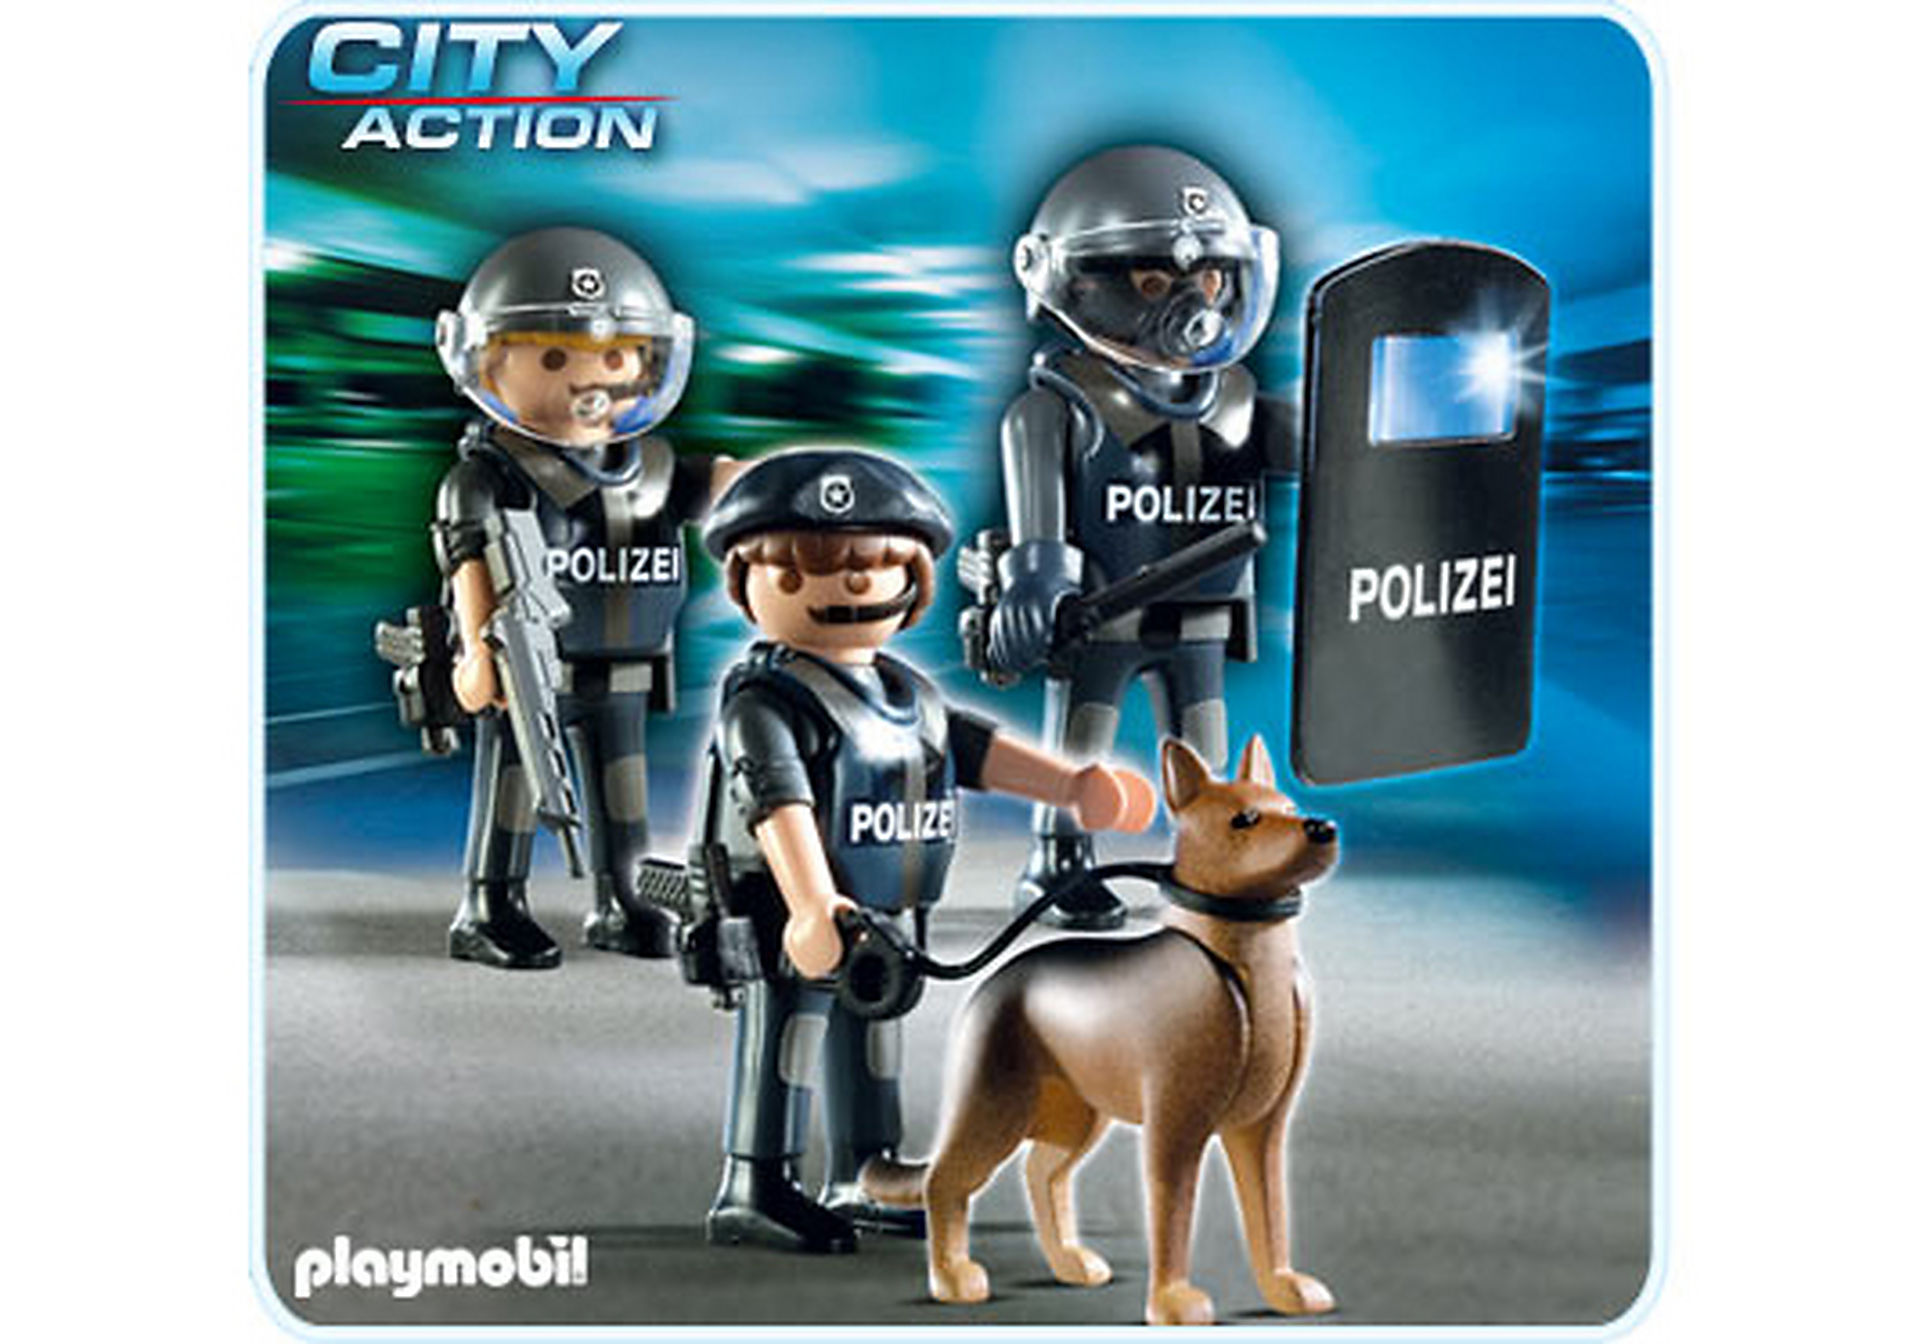 http://media.playmobil.com/i/playmobil/5181-A_product_detail/Spezialeinheit